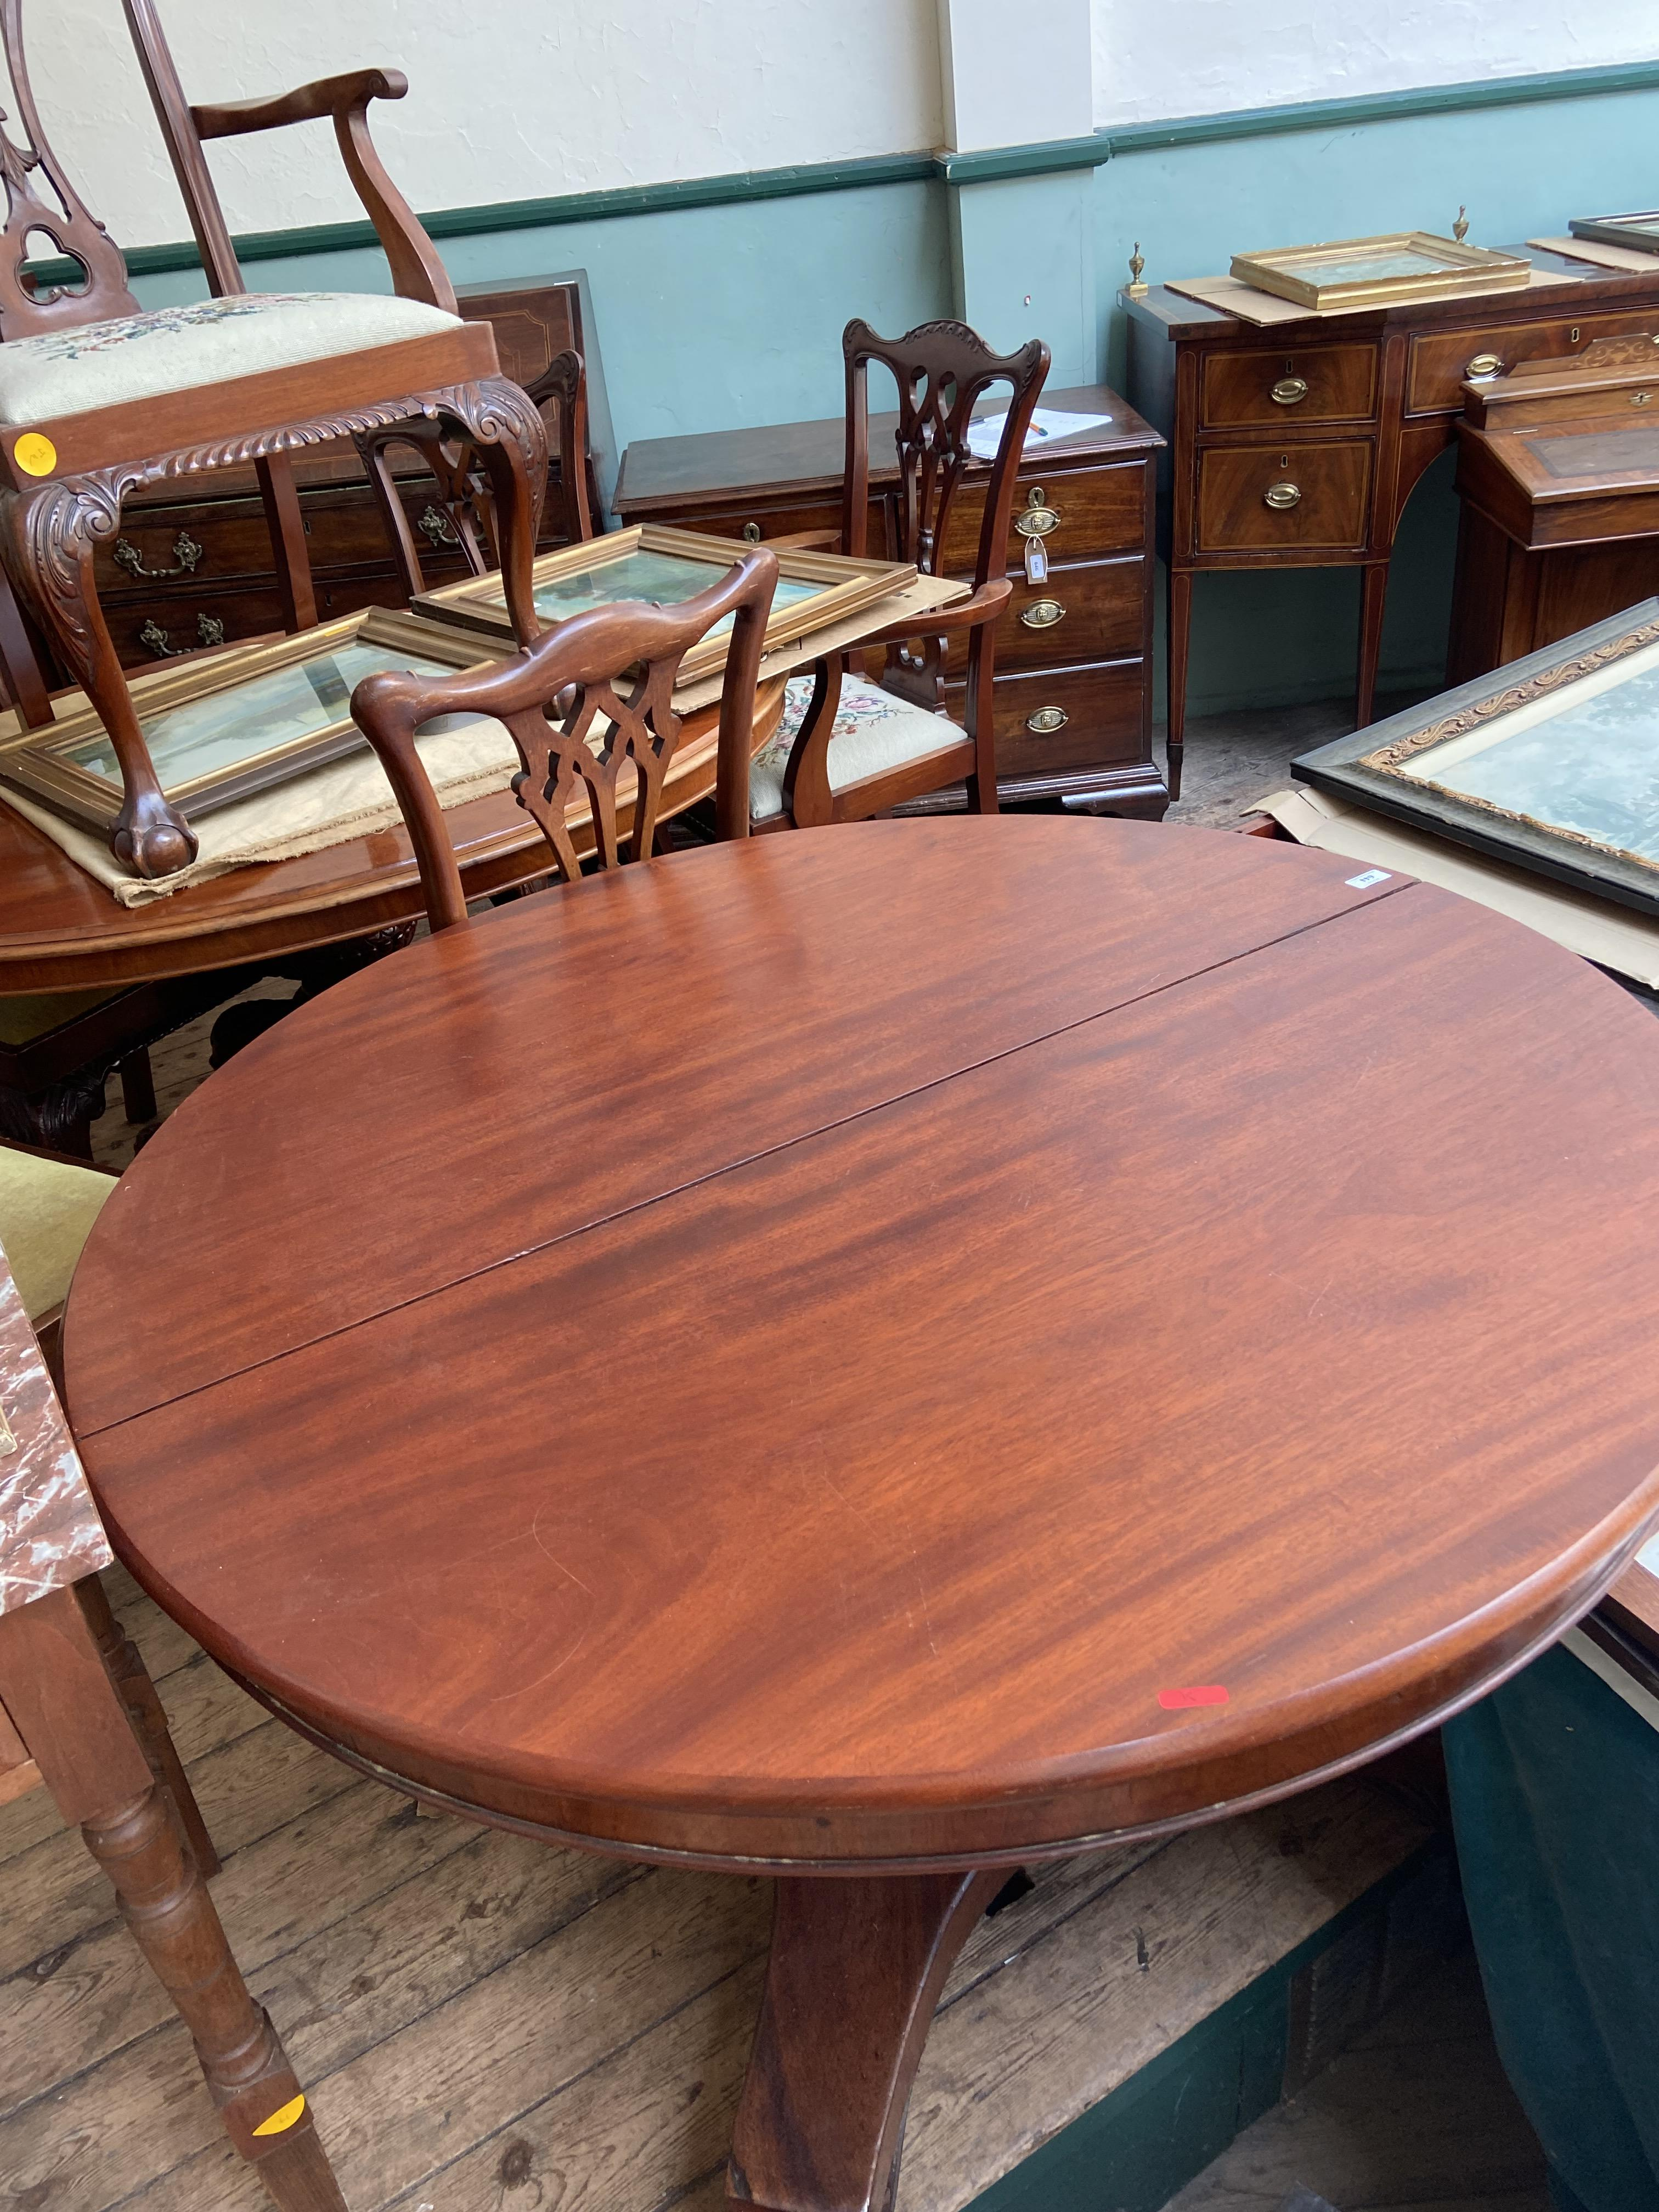 Circular topped dining table on 3 splayed claw feet offered with 3 spare leaves - Image 2 of 2